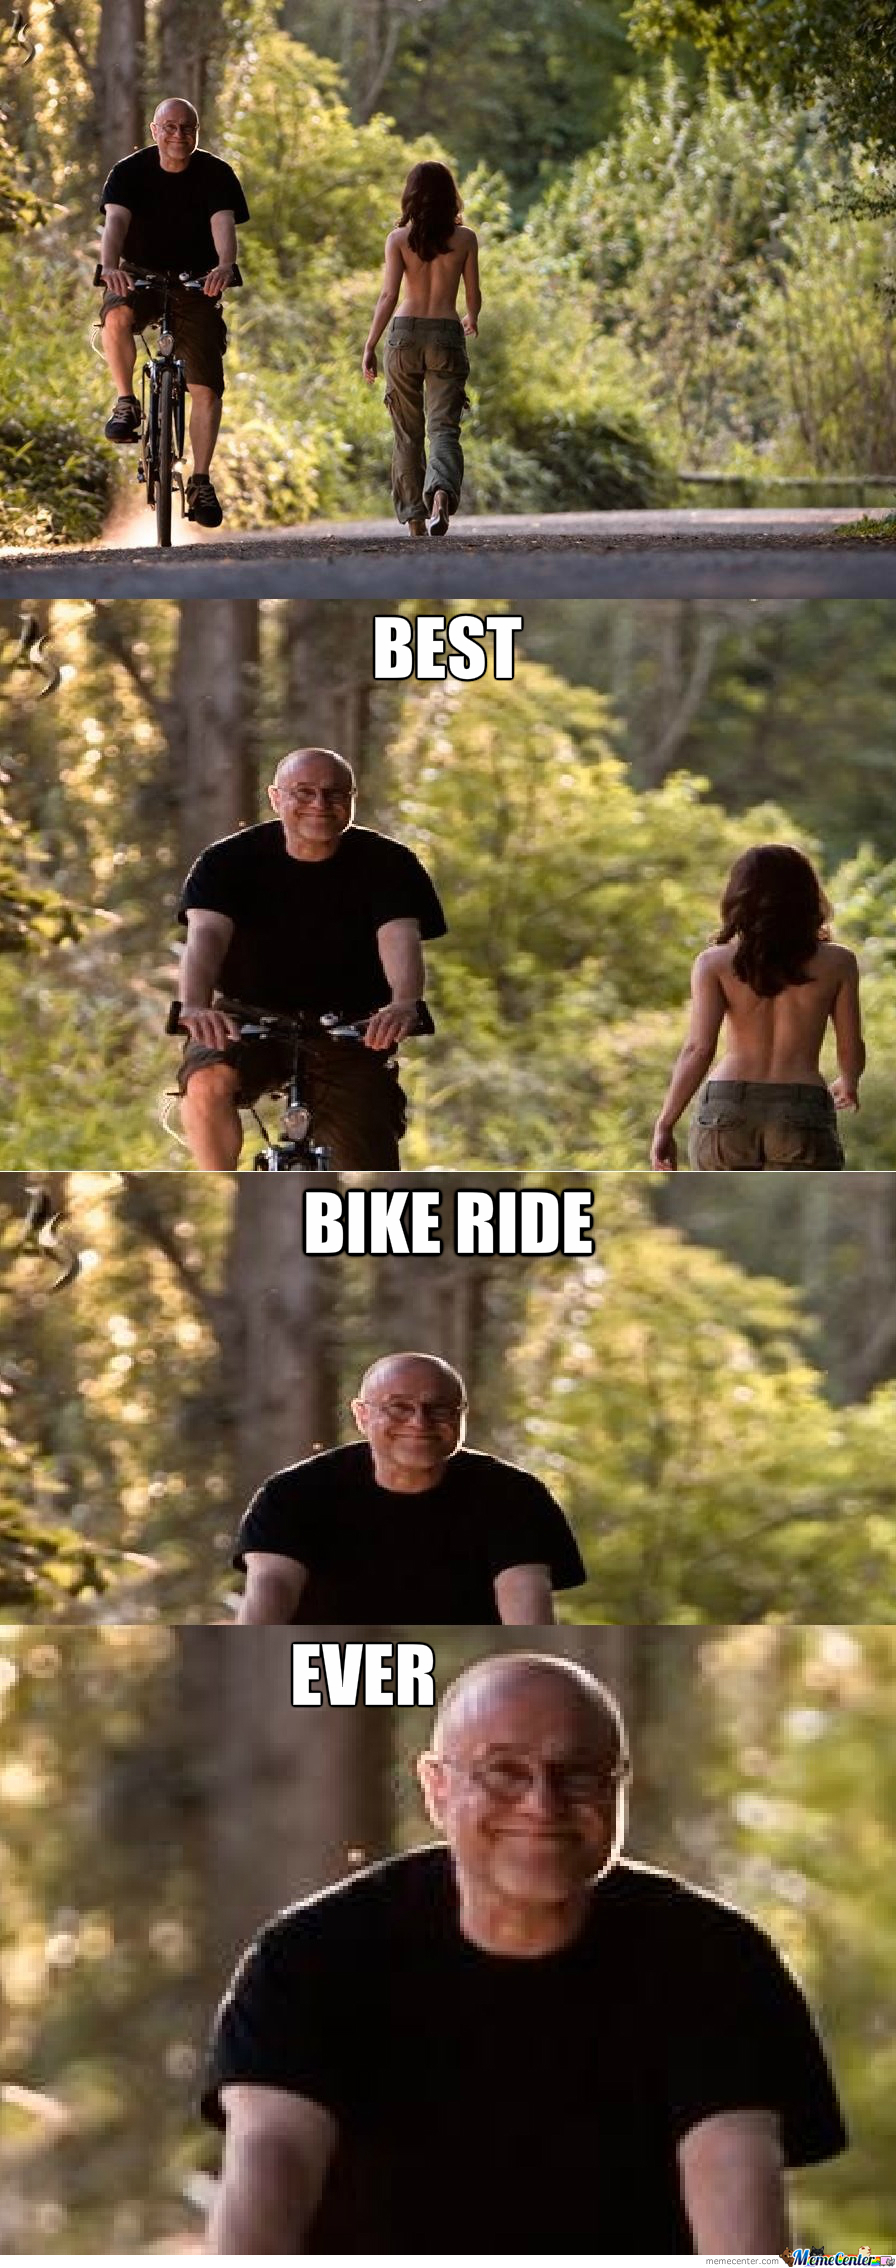 Best Bike Ride Ever